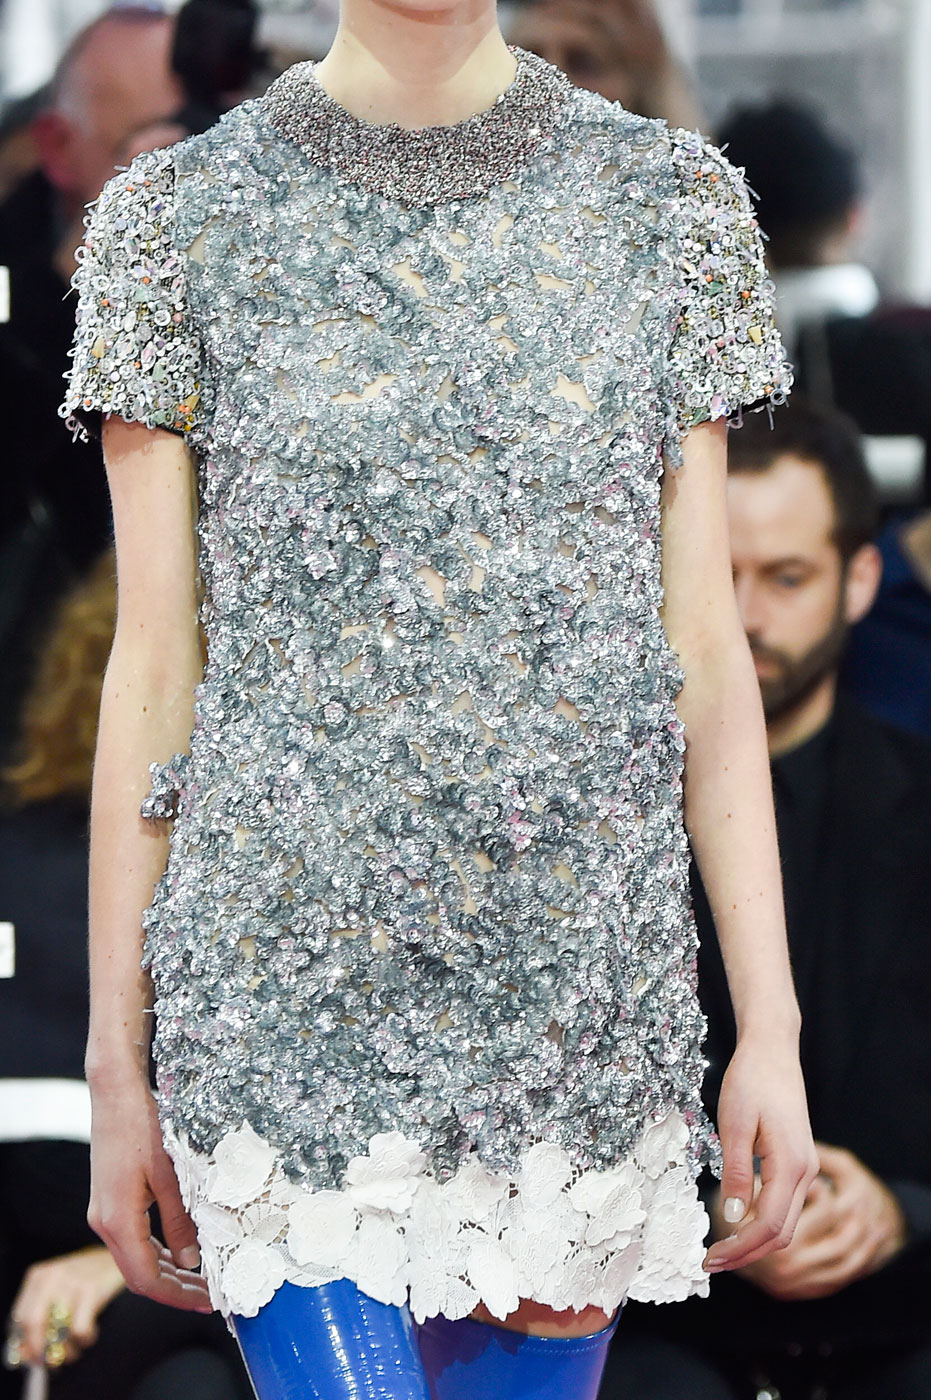 Christian-Dior-fashion-runway-show-close-ups-haute-couture-paris-spring-summer-2015-the-impression-096